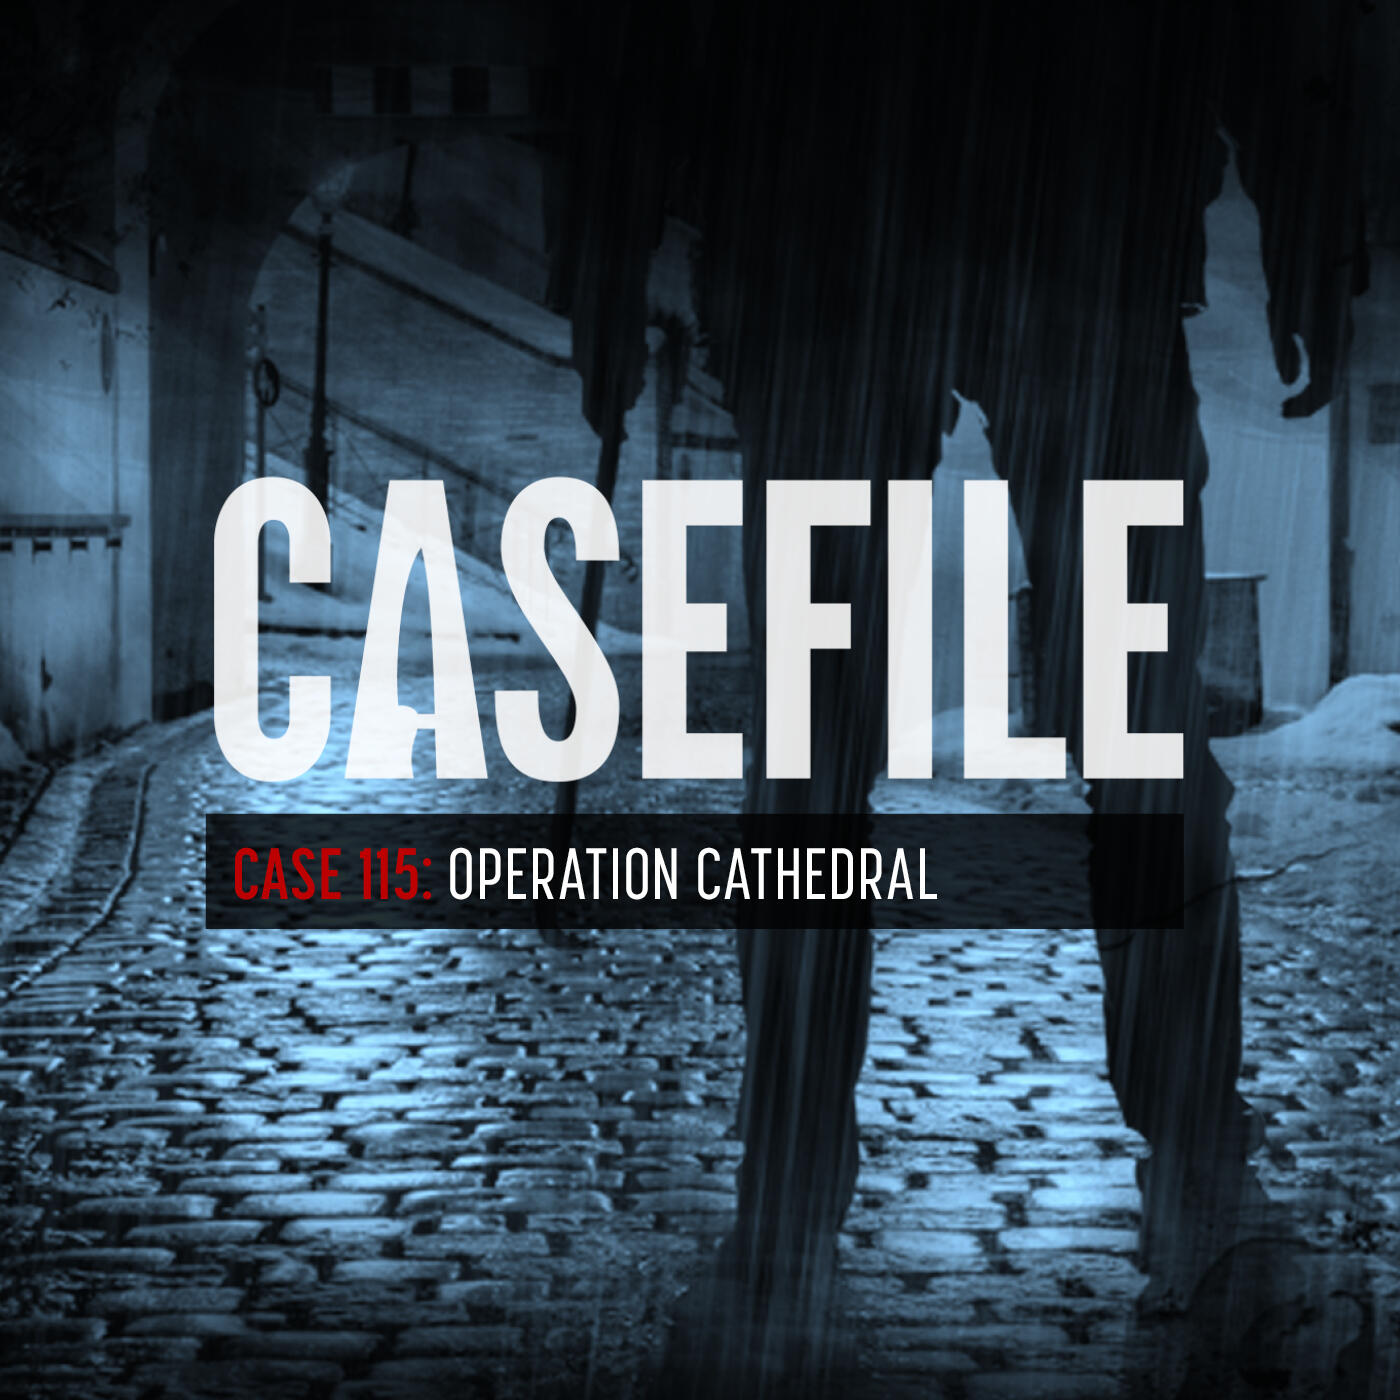 Case 115: Operation Cathedral